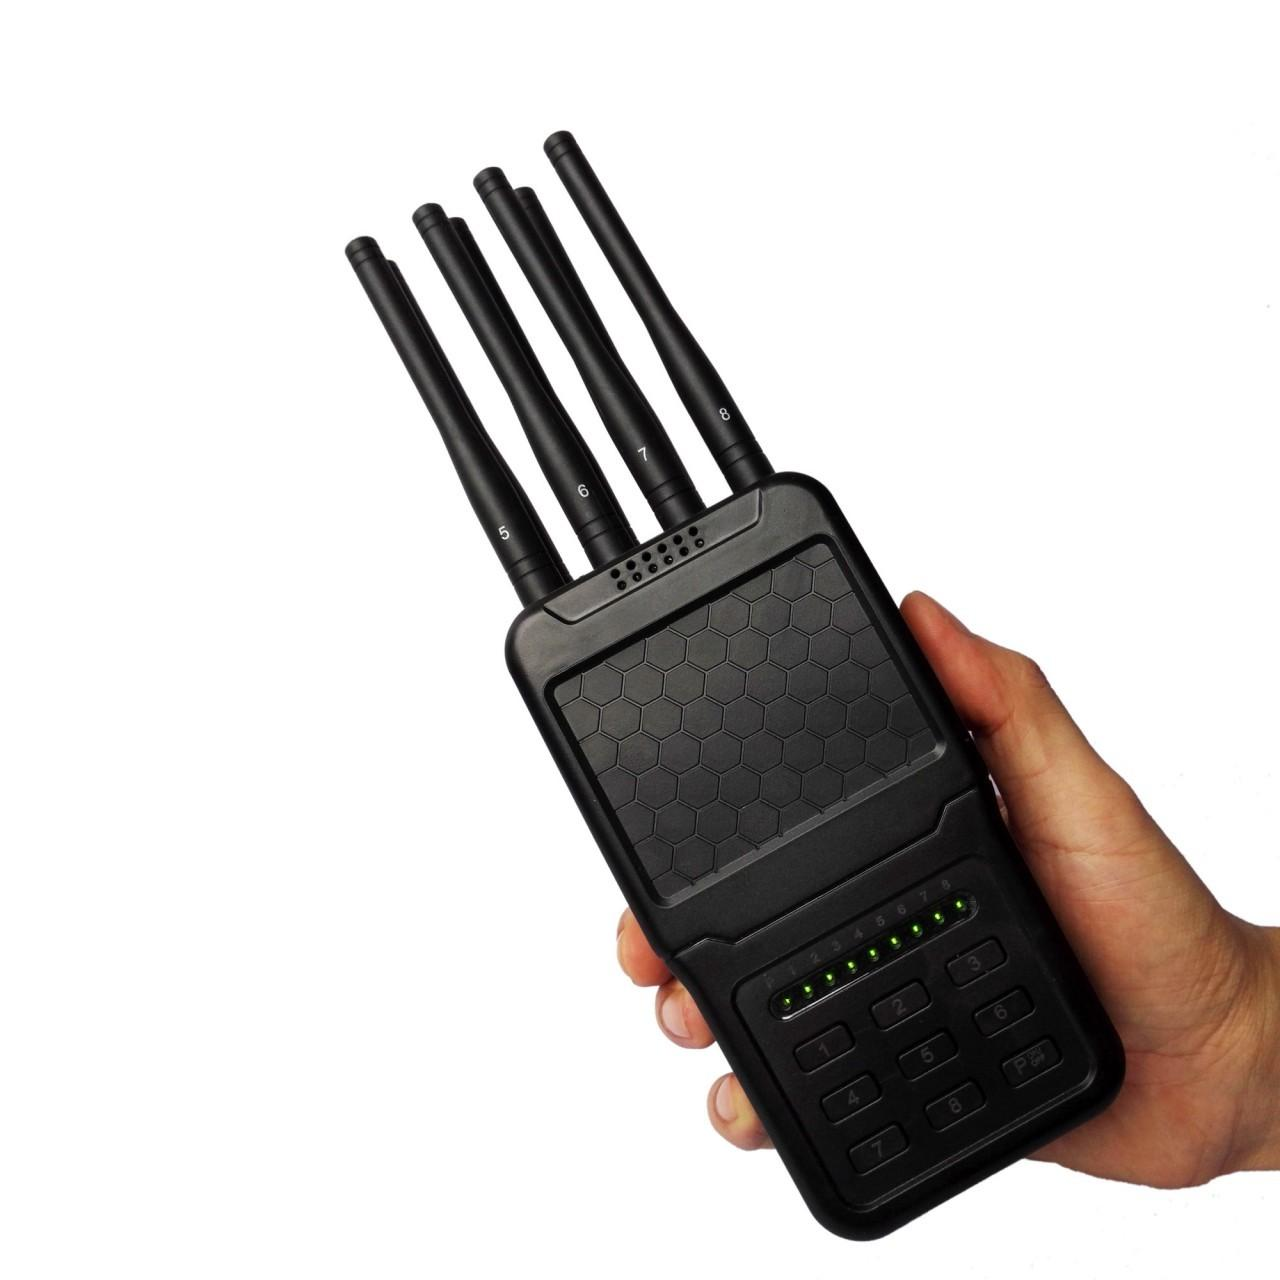 Selectable Keys Portable Cell Phone Signal Jammer 3G 4G WiFi GPS Blocker 8 Bands for sale